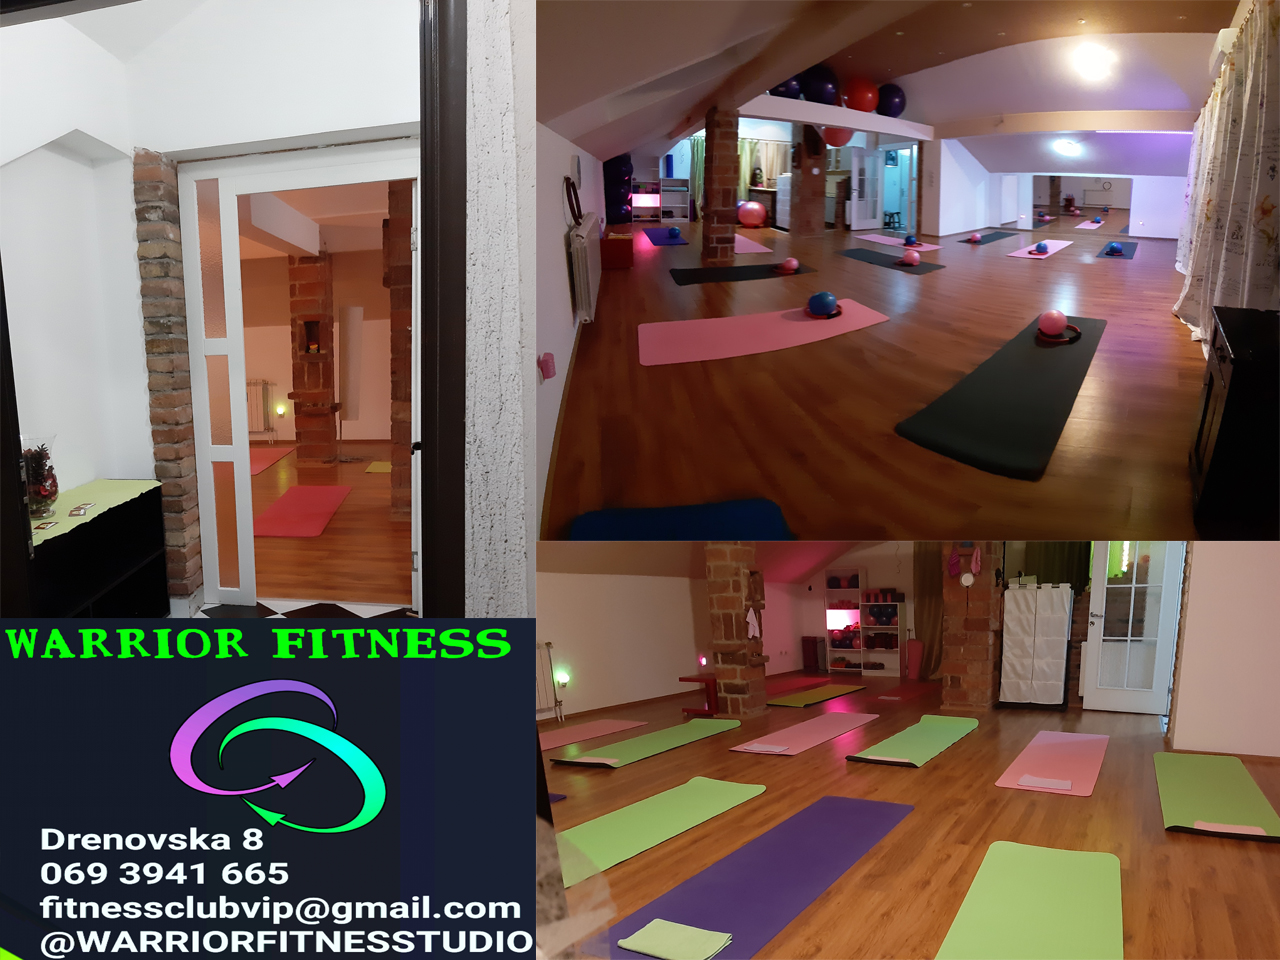 WARRIOR FITNESS STUDIO Teretane, fitness Beograd